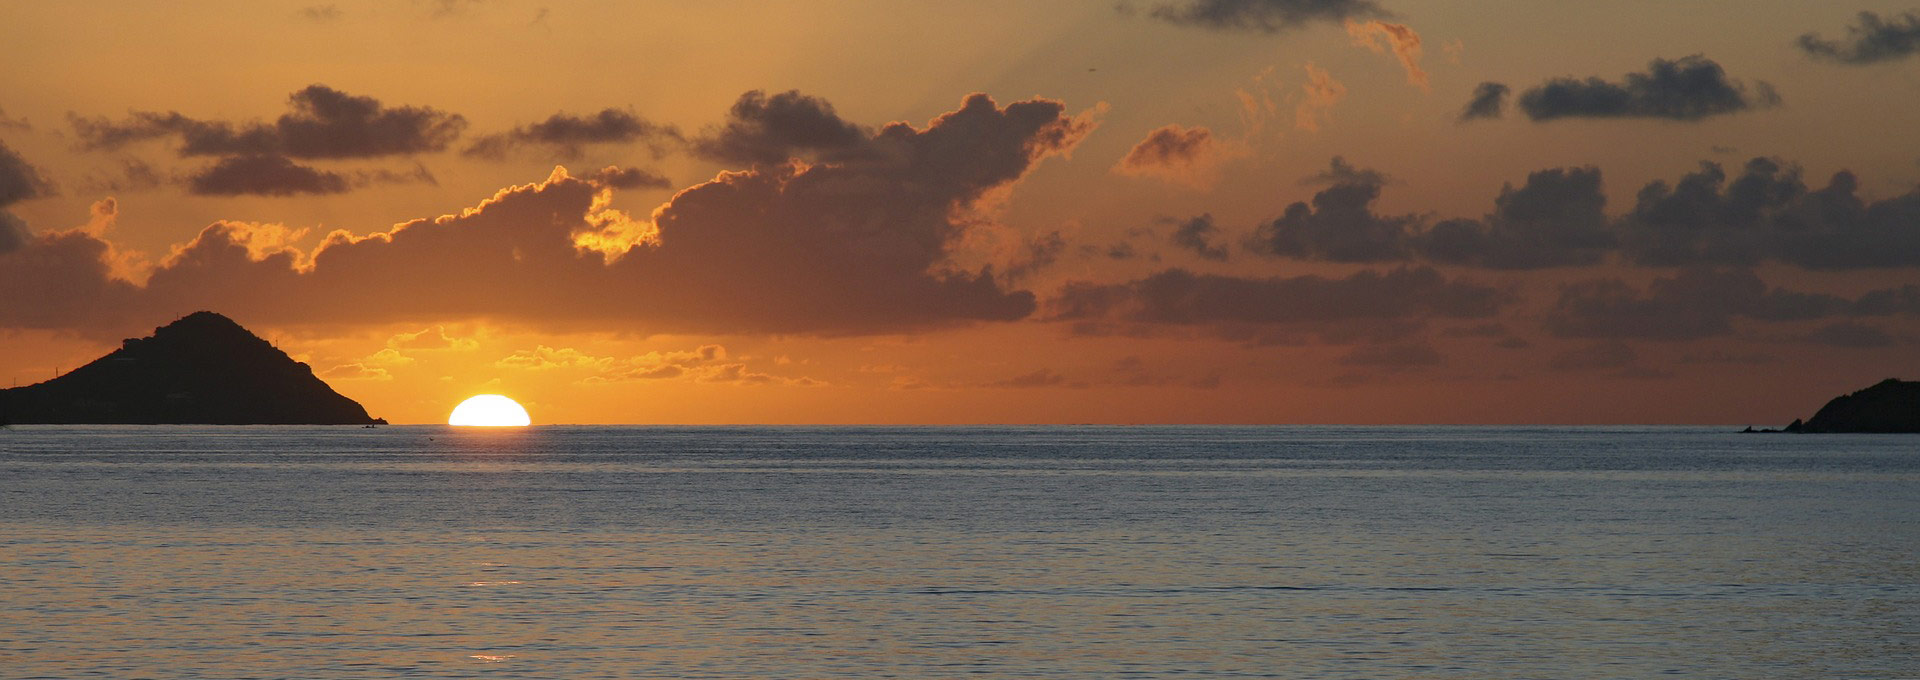 Is an eastern or western caribbean cruise better?